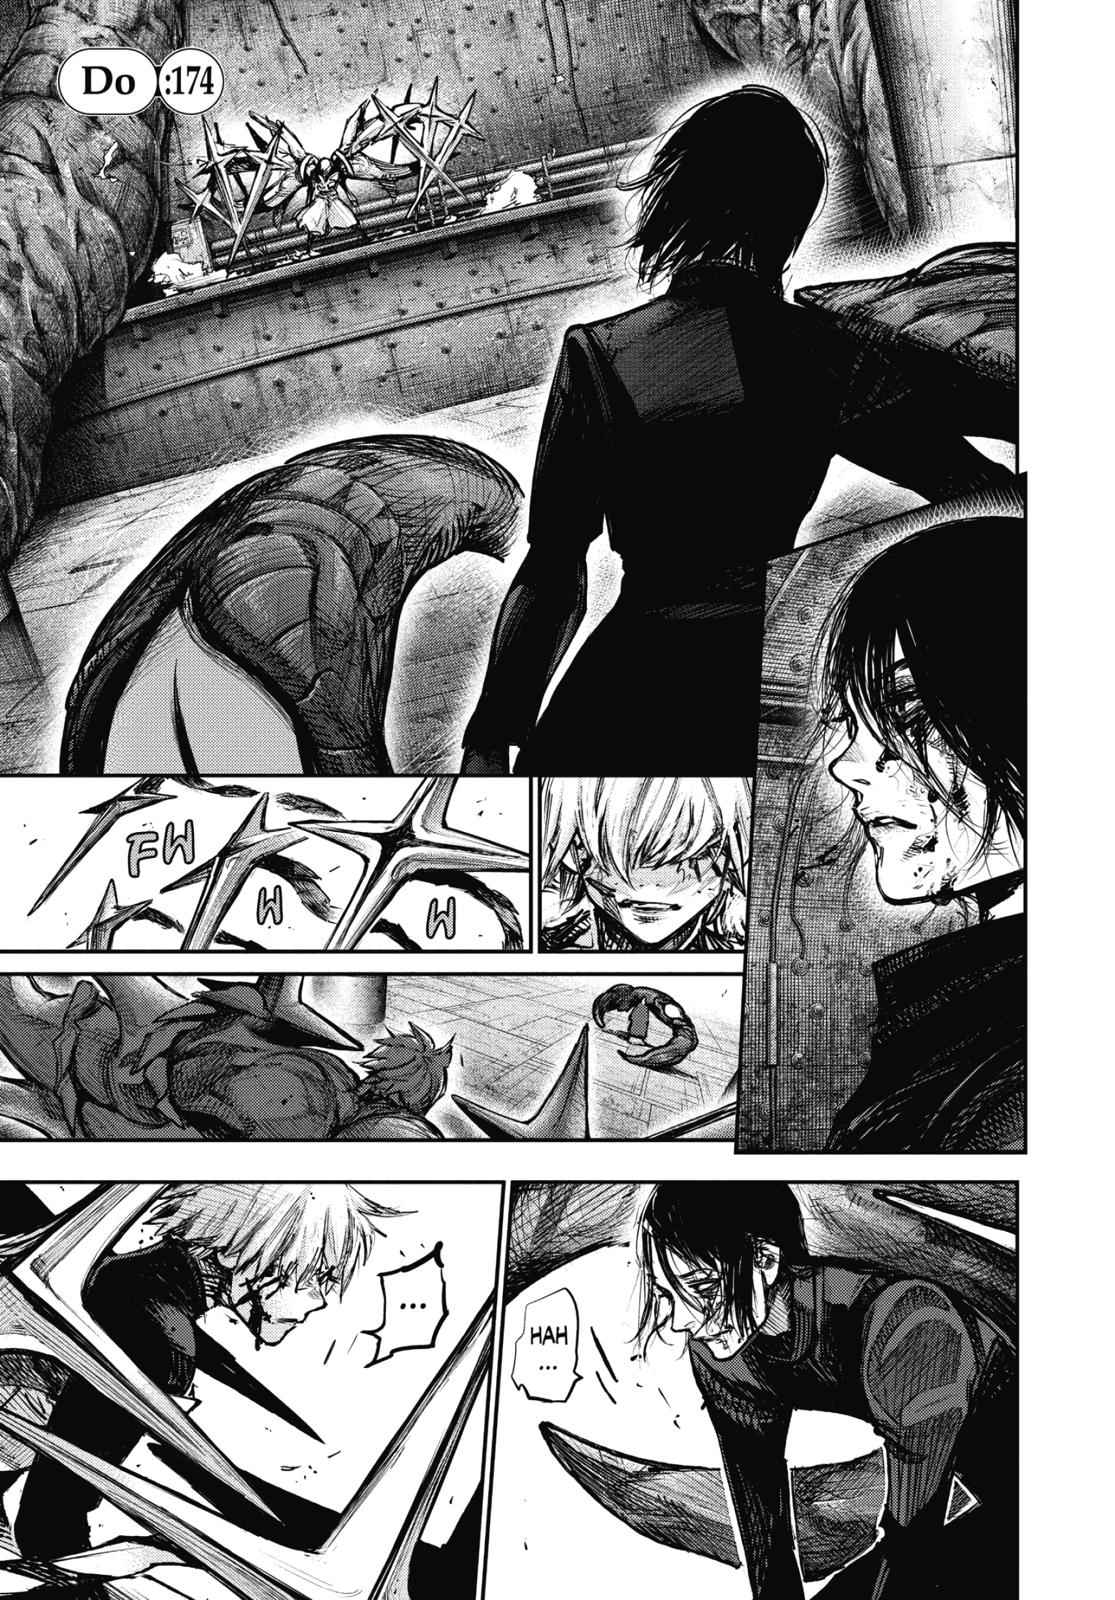 Tokyo Ghoul:re Chapter 174 Page 1